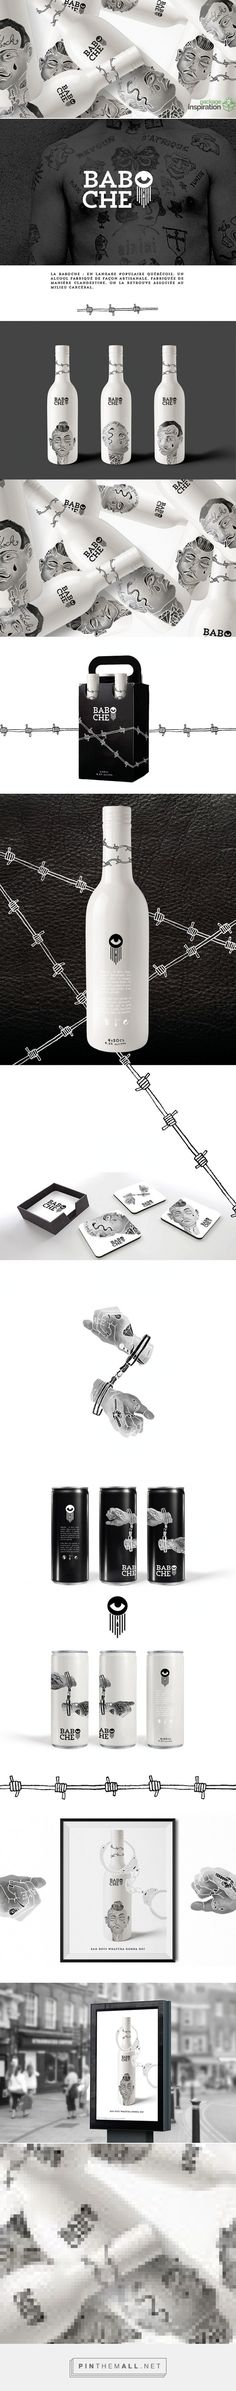 BABOCHE - Daily Package Design InspirationDaily Package Design Inspiration | - created via http://pinthemall.net